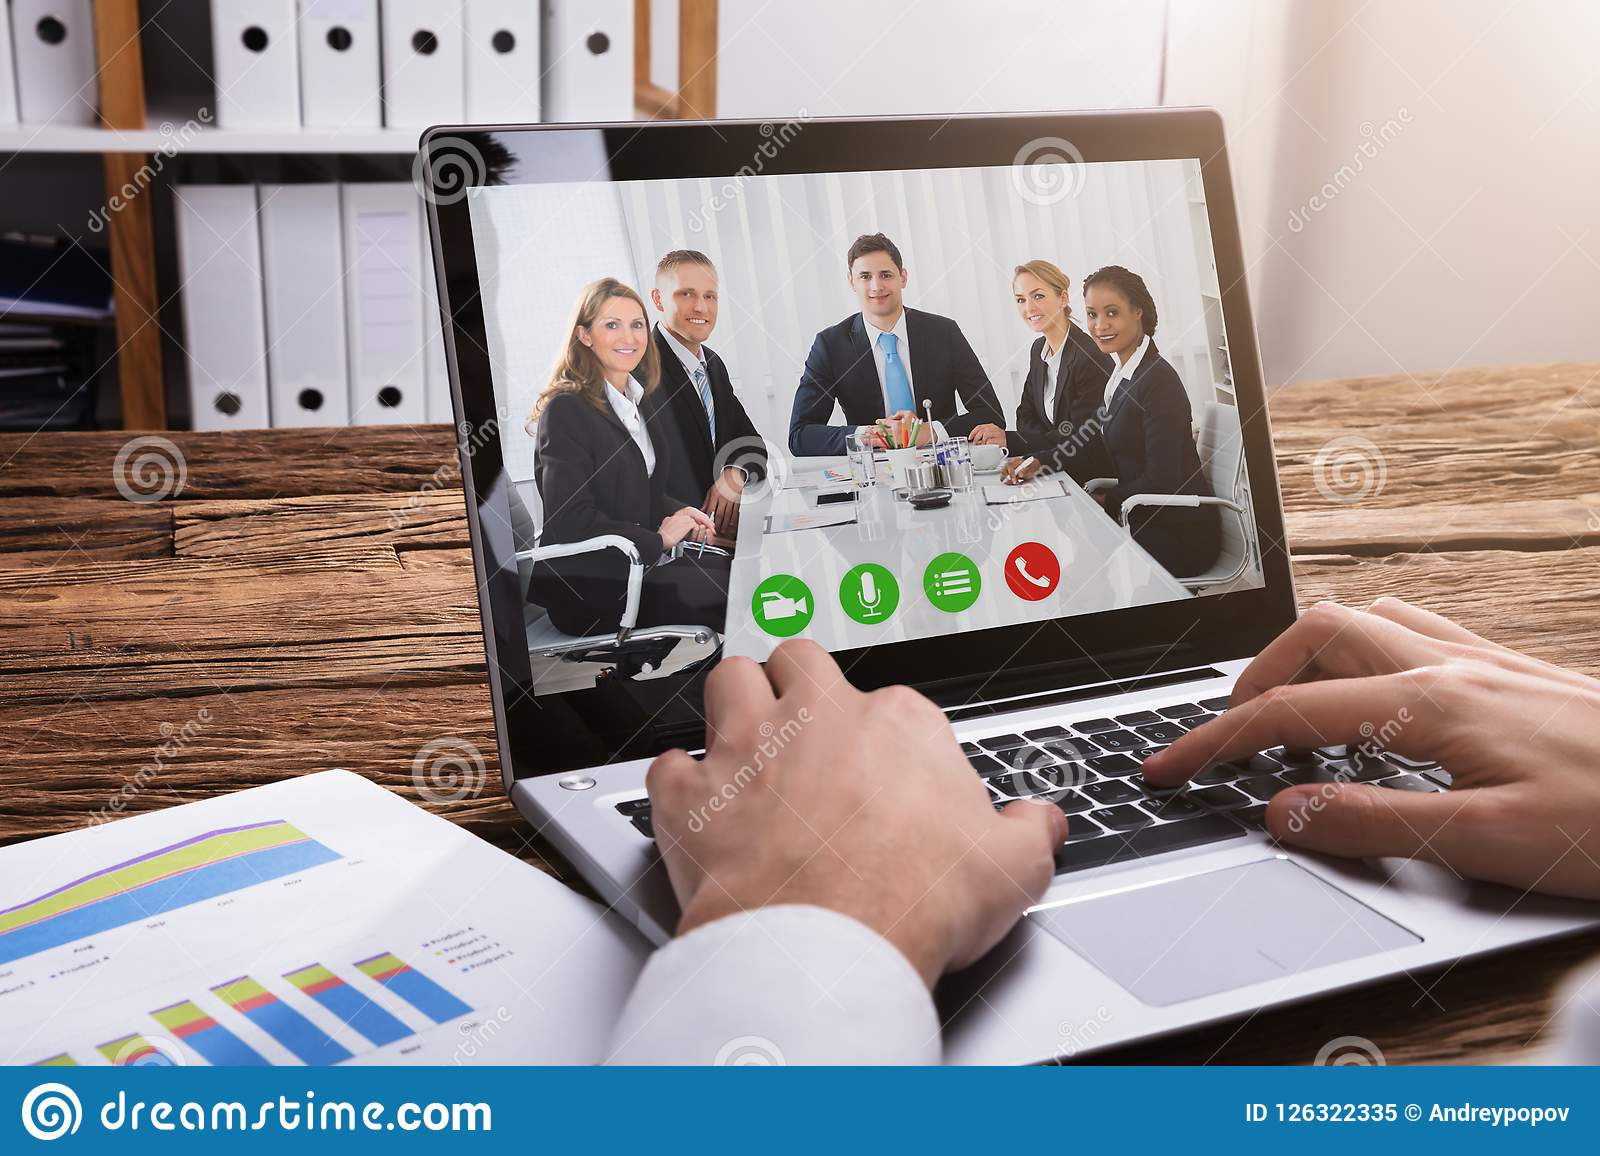 Businessperson Video Conferencing With Colleagues On Laptop